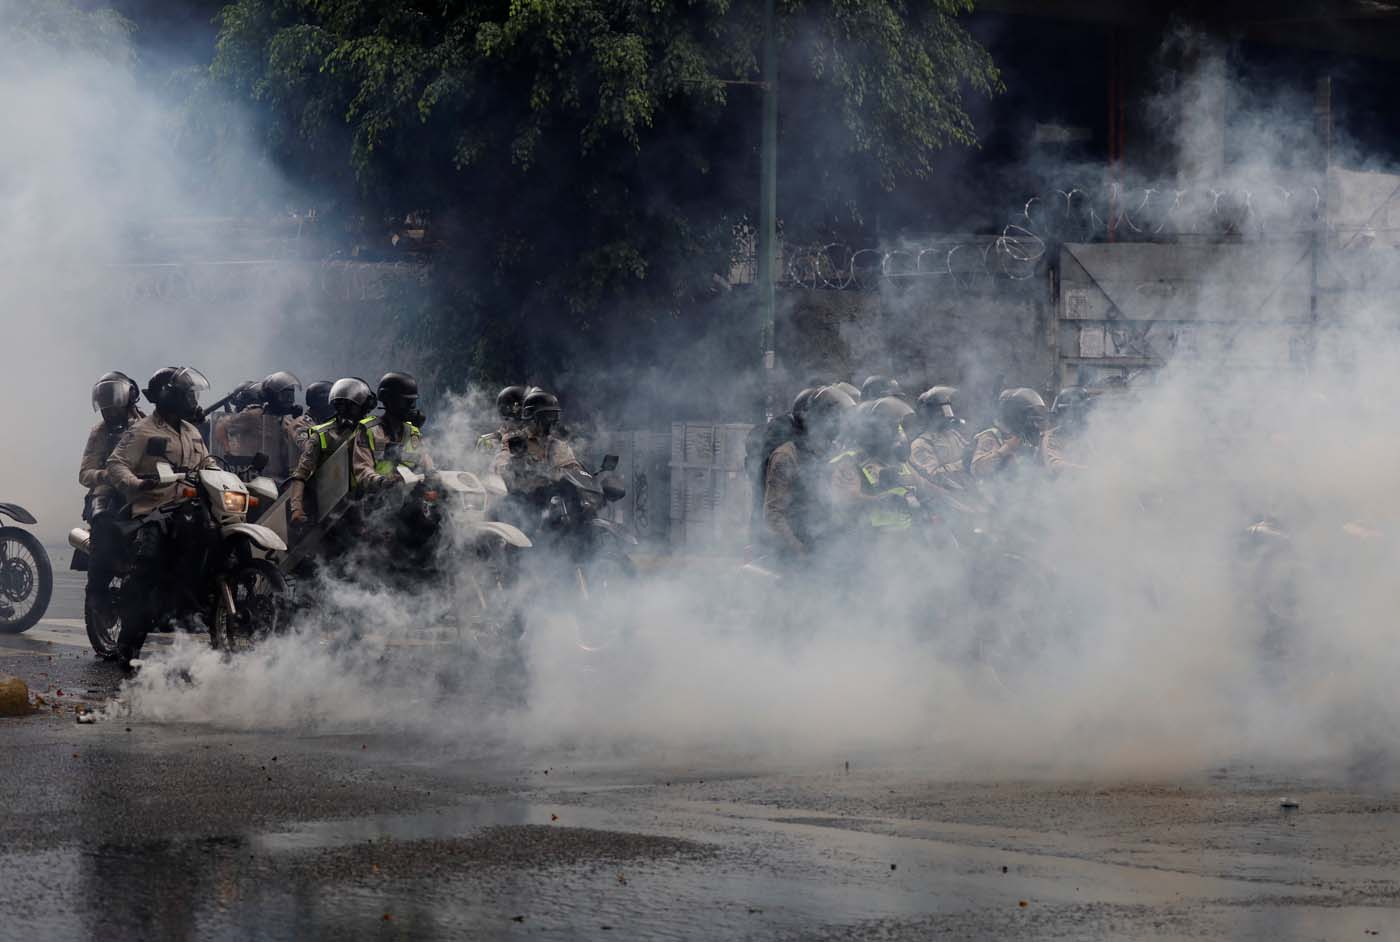 Security forces on motorcycles are seen behind a cloud of tear gas during a rally against Venezuela's President Nicolas Maduro's government in Caracas, Venezuela June 29, 2017. REUTERS/Carlos Garcia Rawlins